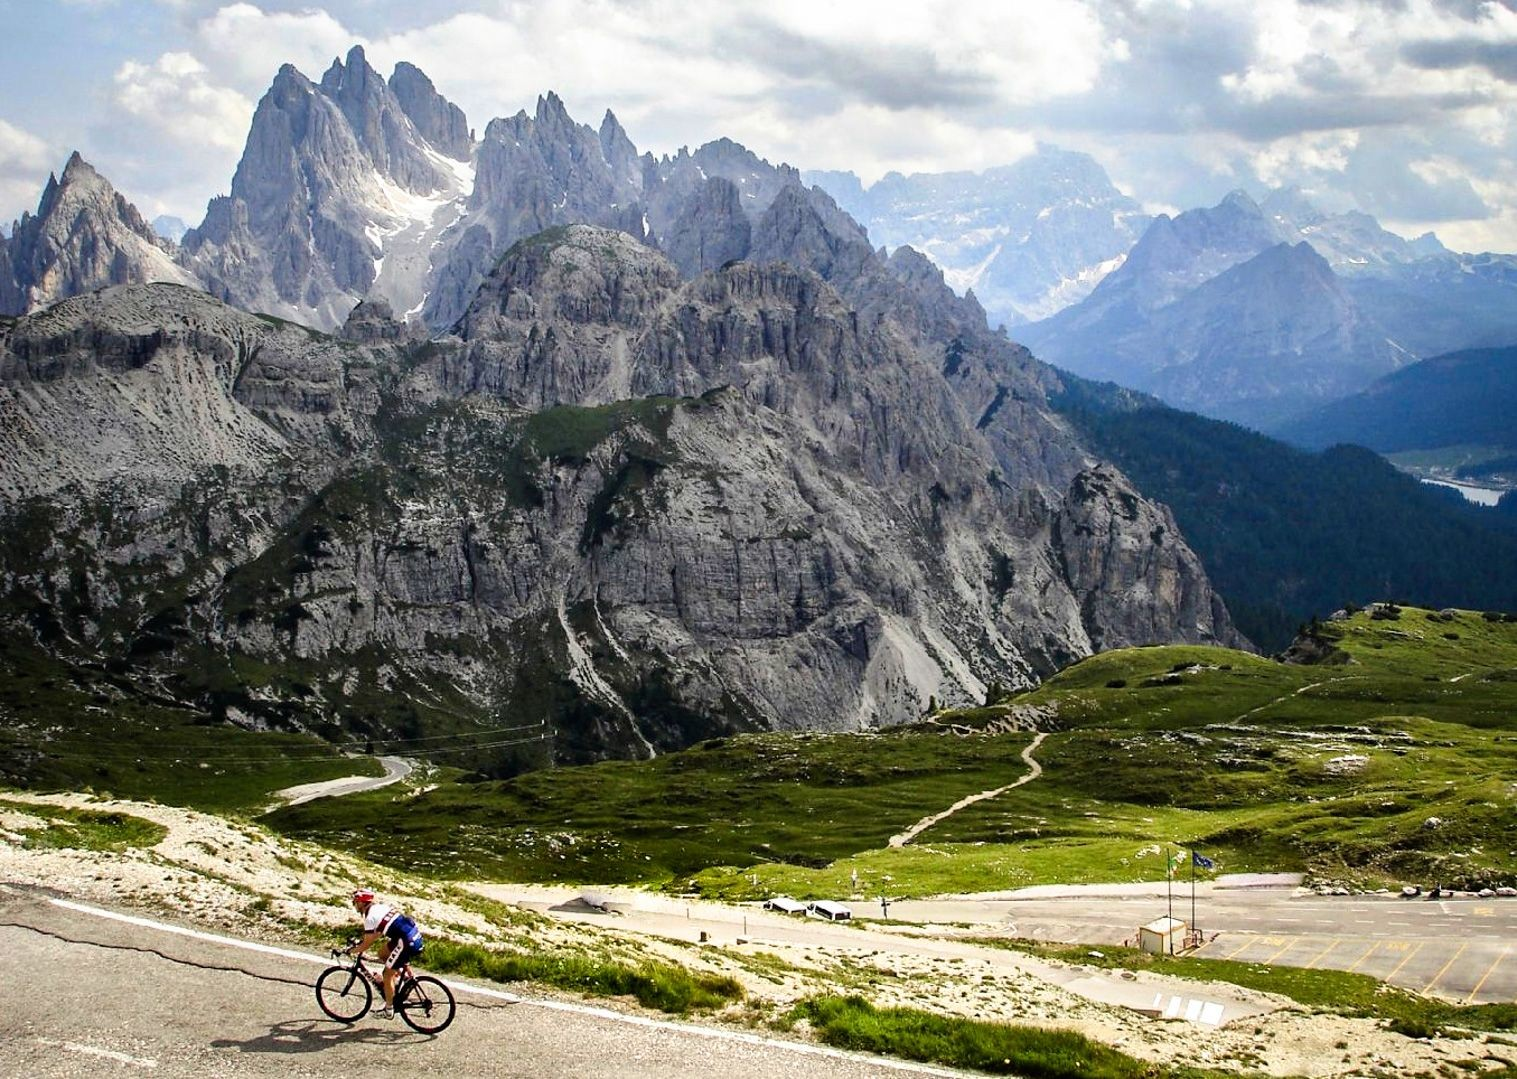 incredible-mountain-climbs-scenery-on-road-bike.jpg - Italy - Dolomiti Discoverer - Guided Road Cycling Holiday - Road Cycling